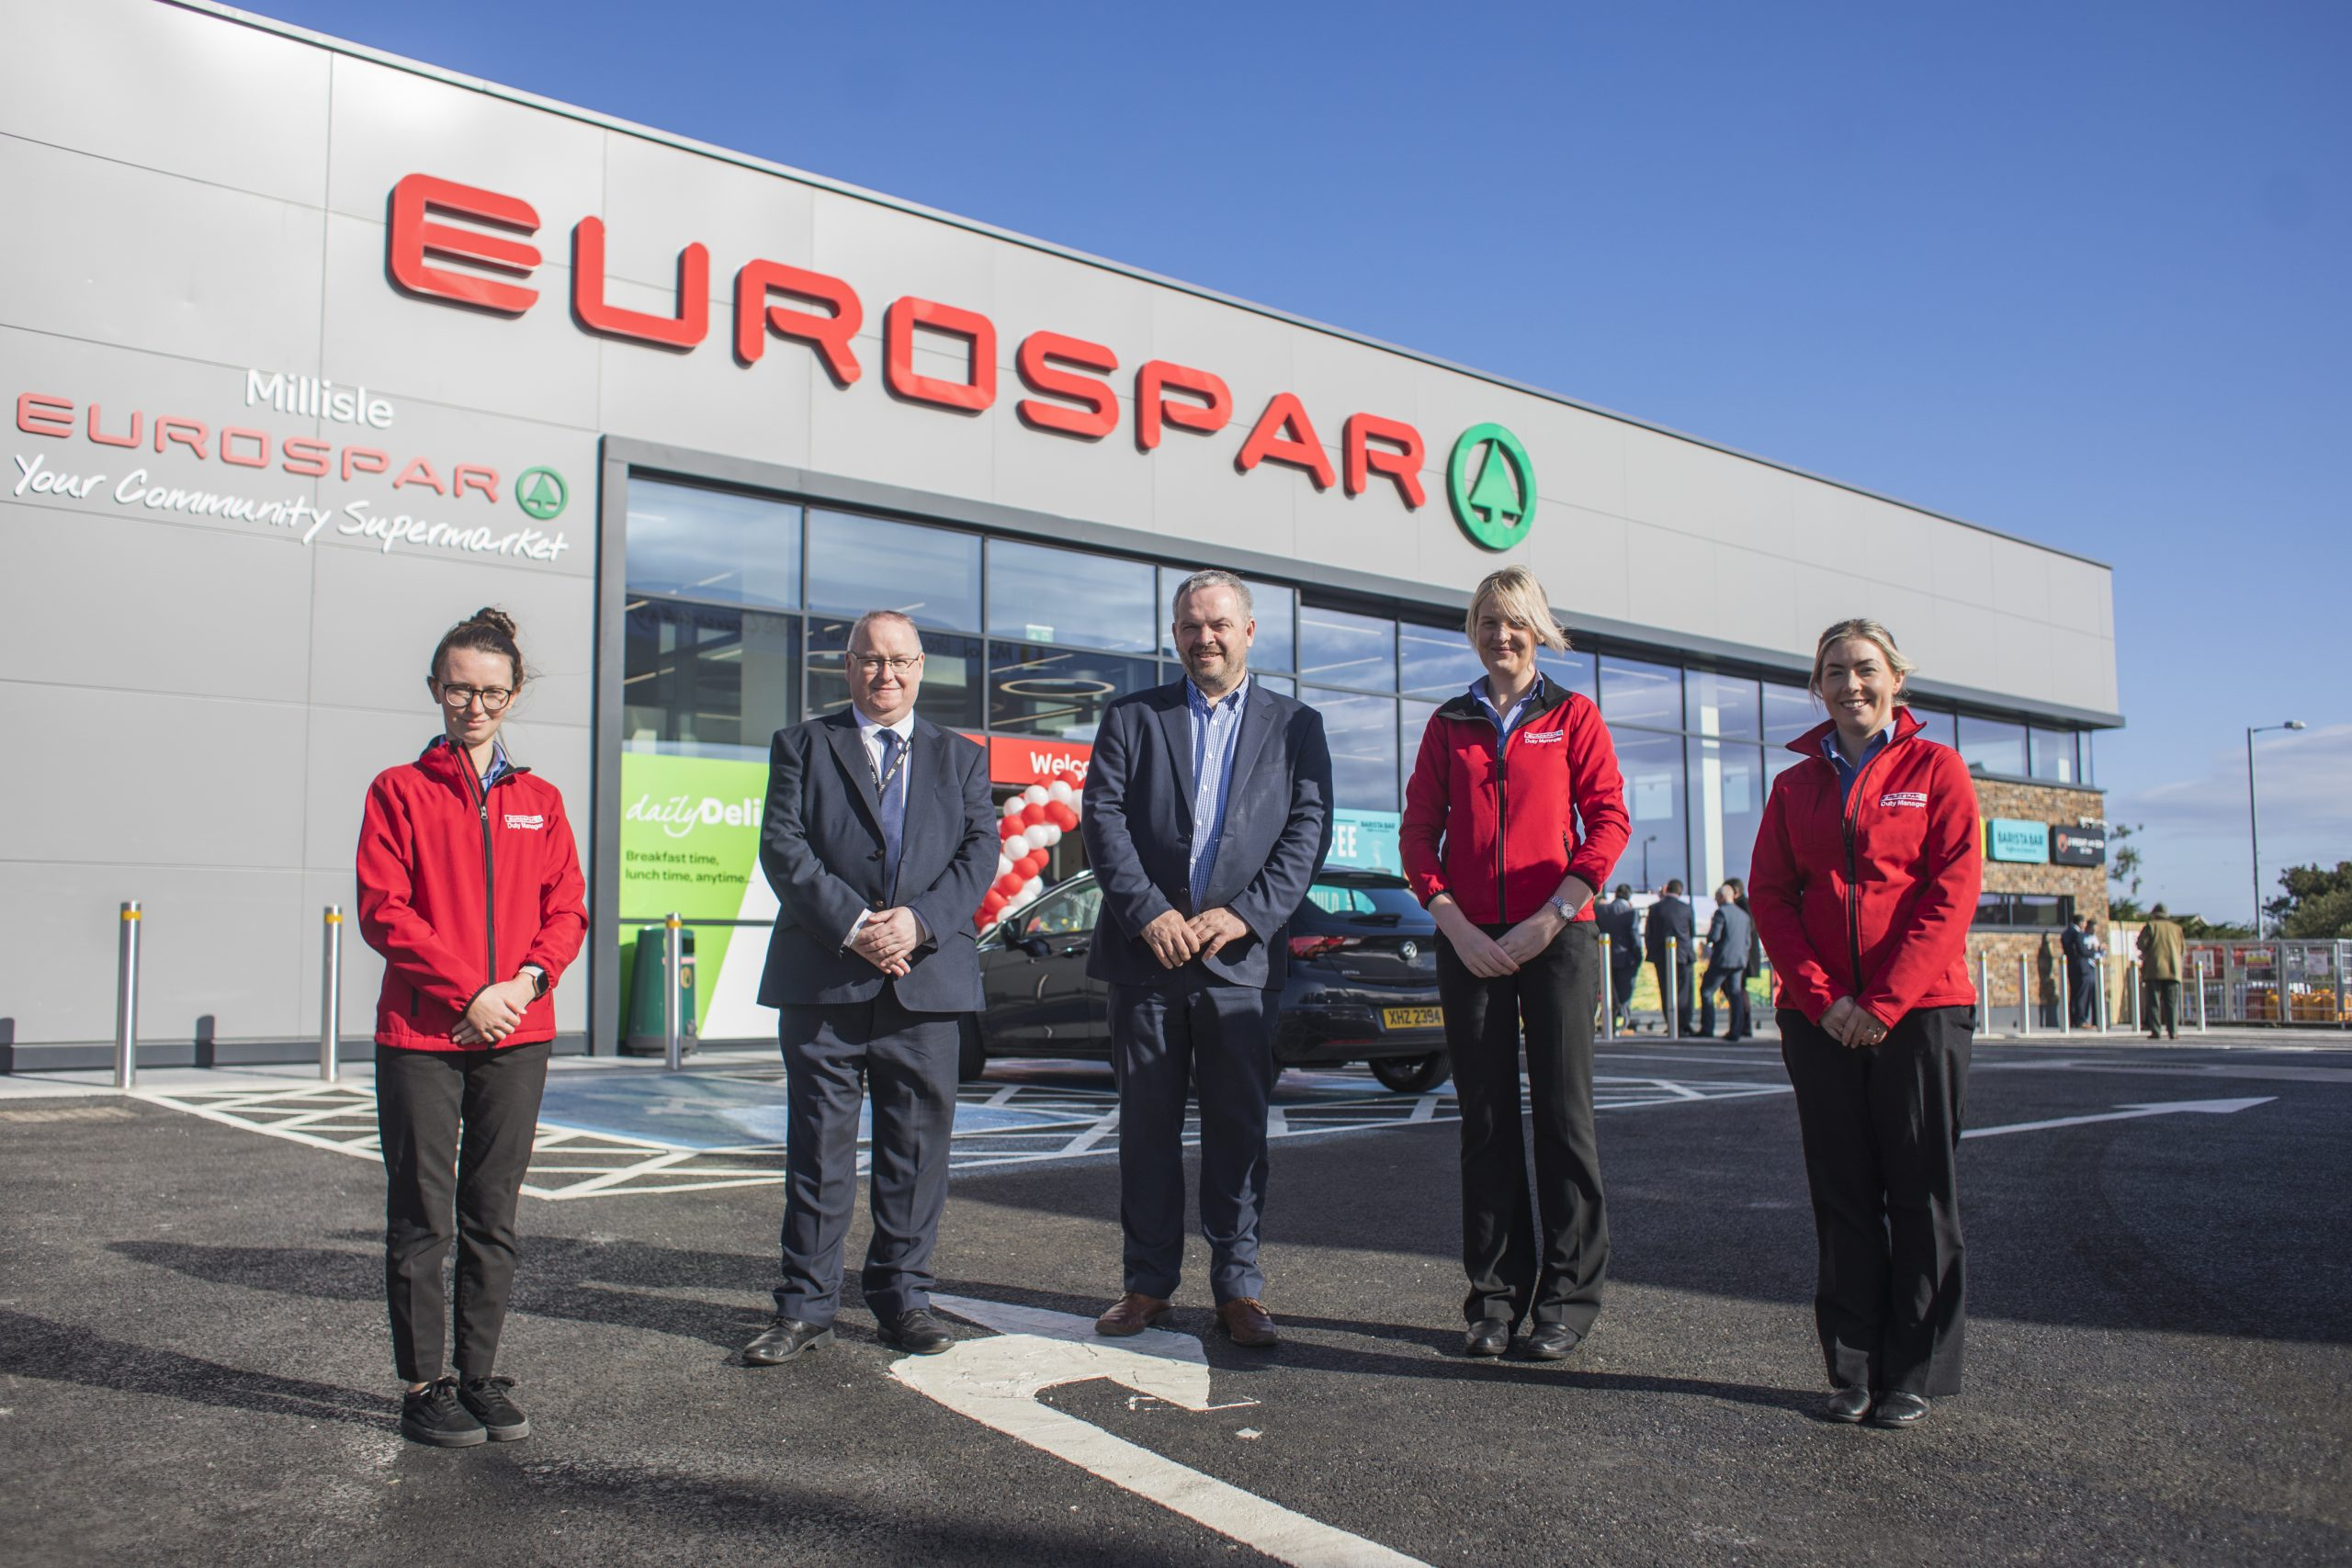 EUROSPAR Millisle has a reason to smile following £3m investment